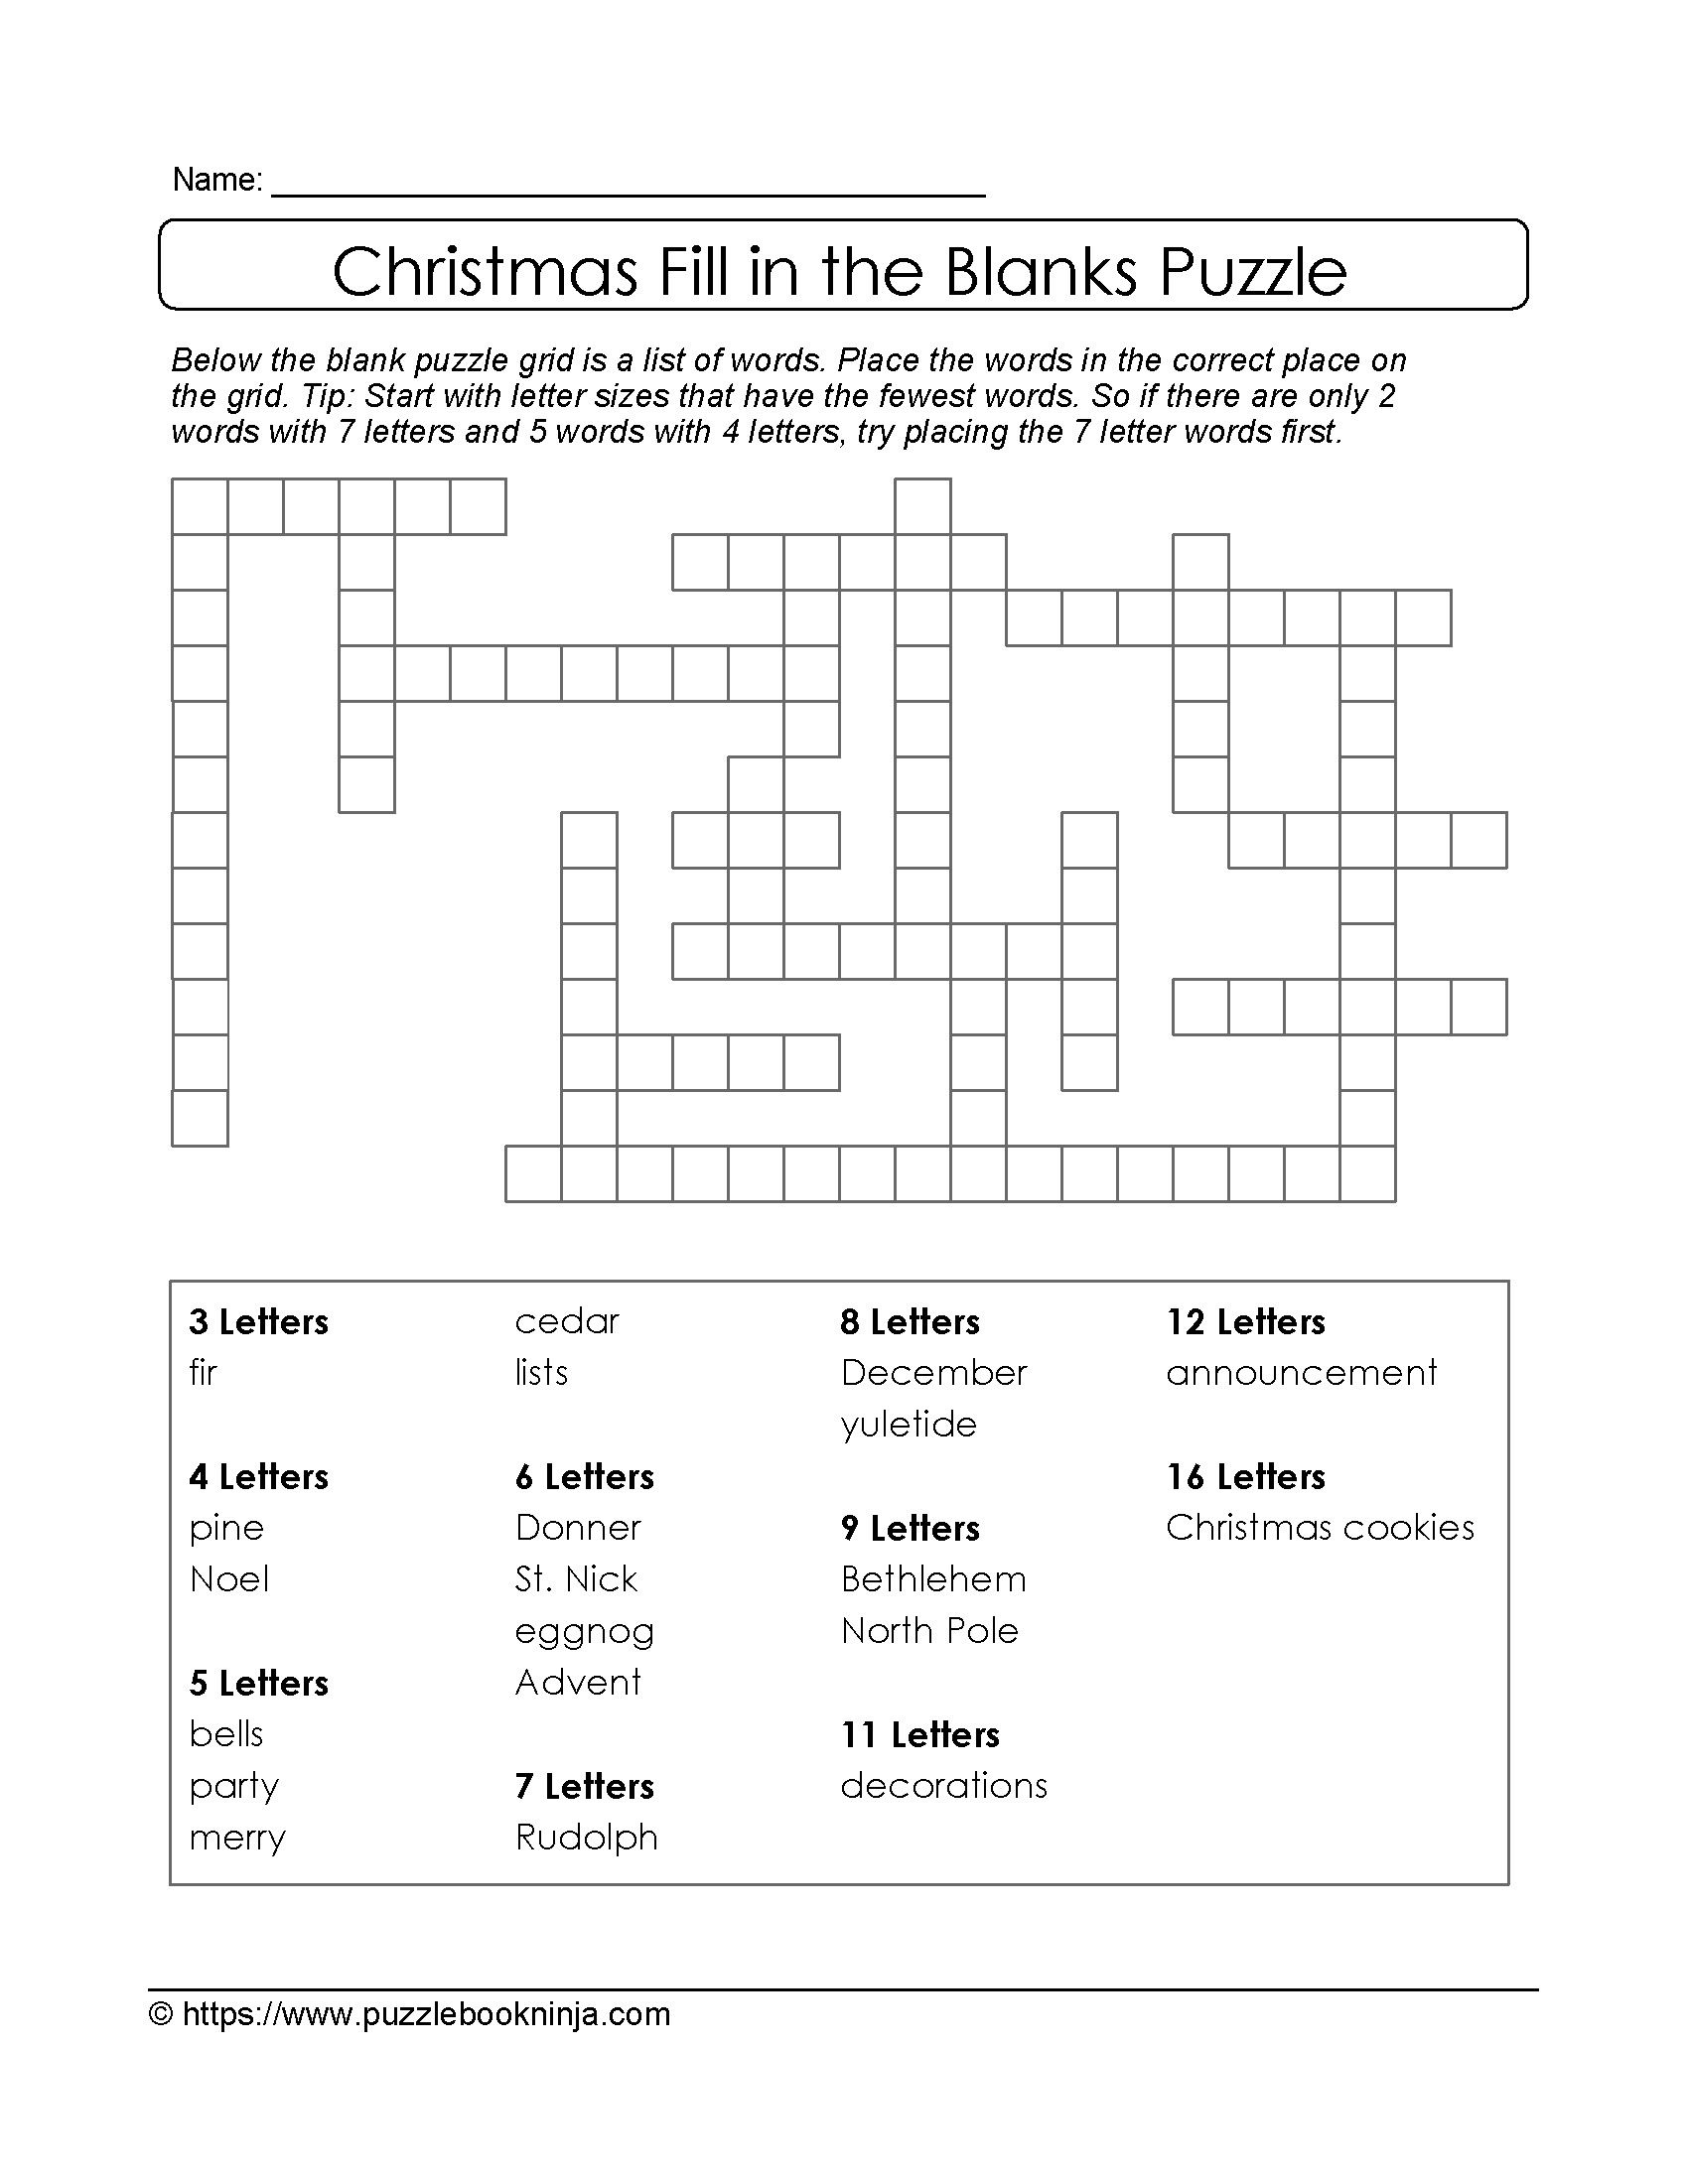 Christmas Printable Puzzle. Free Fill In The Blanks. | Christmas - Printable Christmas Crossword Puzzles For Adults With Answers